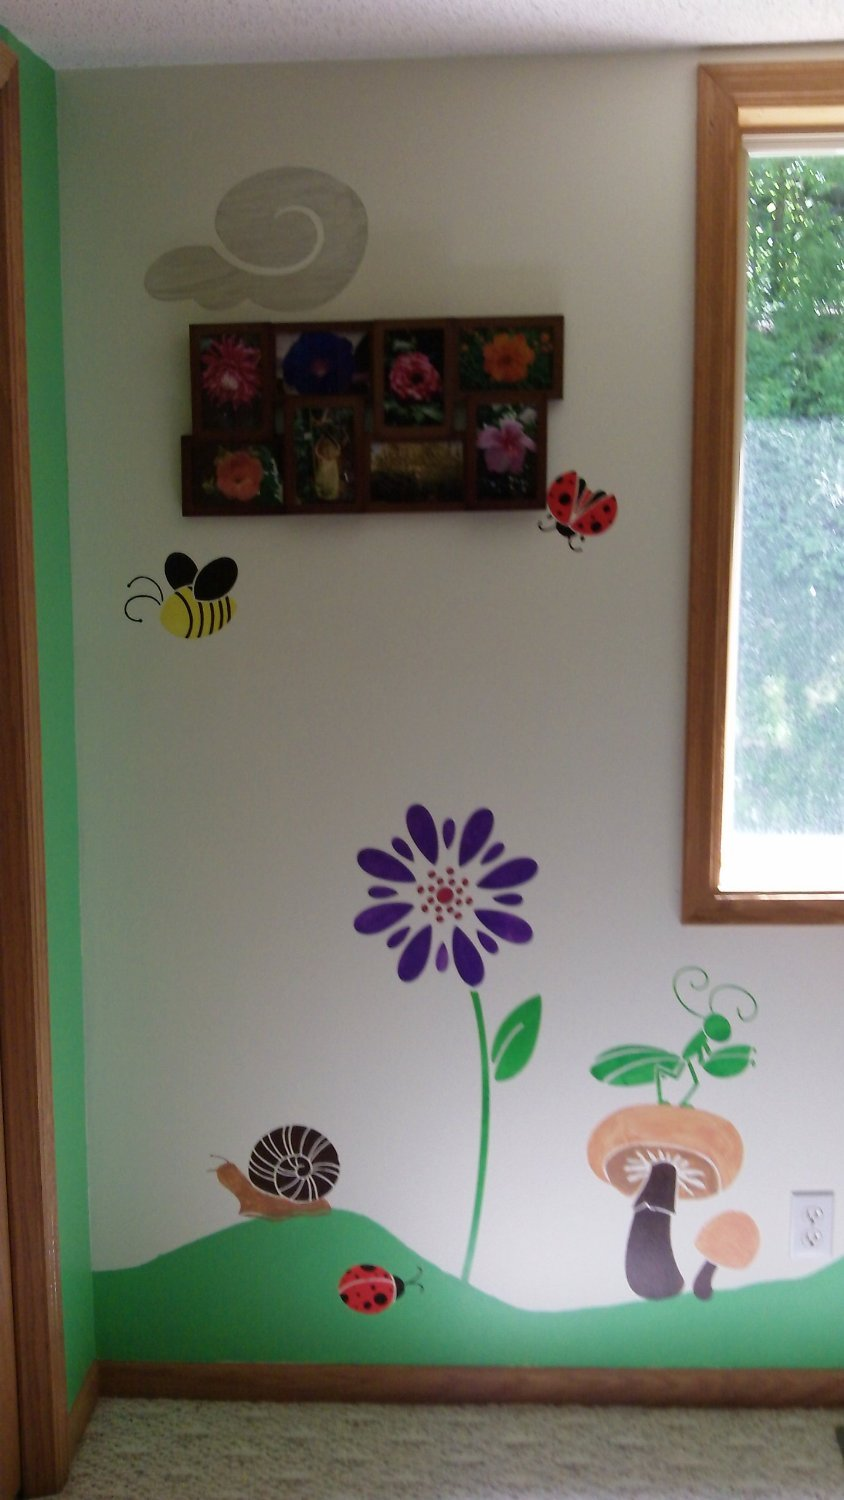 My Wonderful Walls Poppy Flower Stencil for Painting Flowers on Walls and Furniture